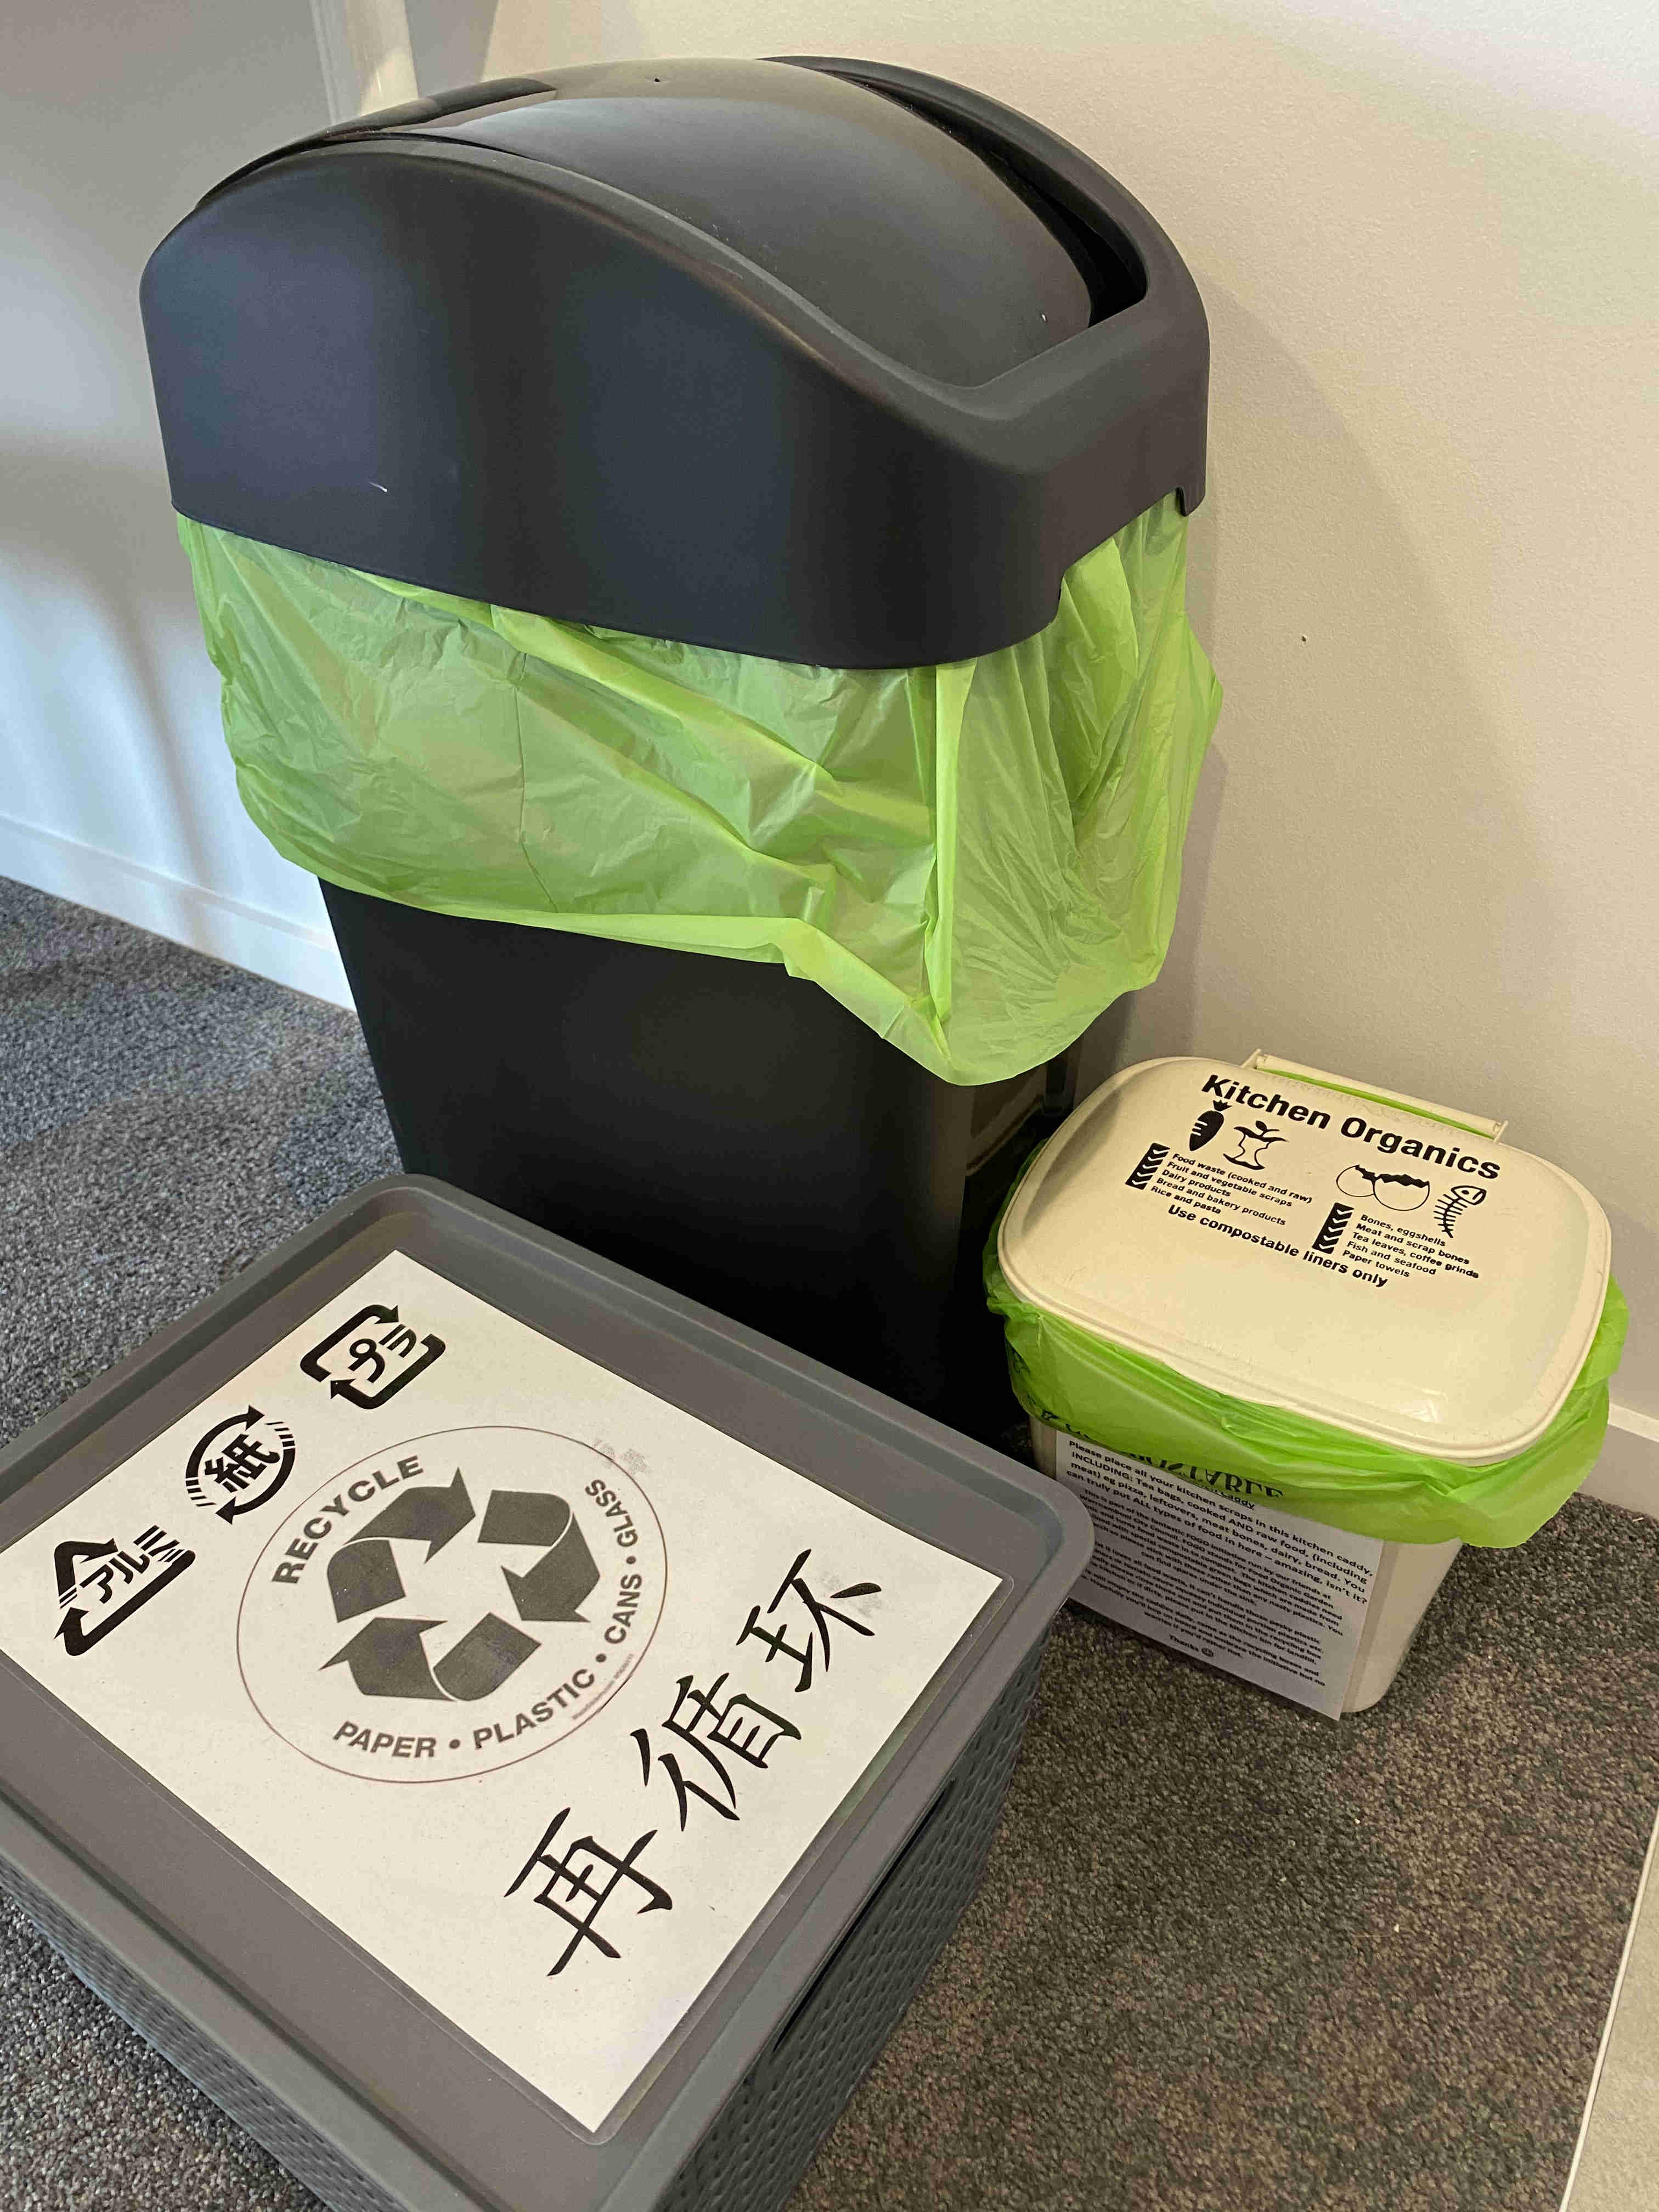 General, recycle and food waste bins with eco-friendly compostable bin liners